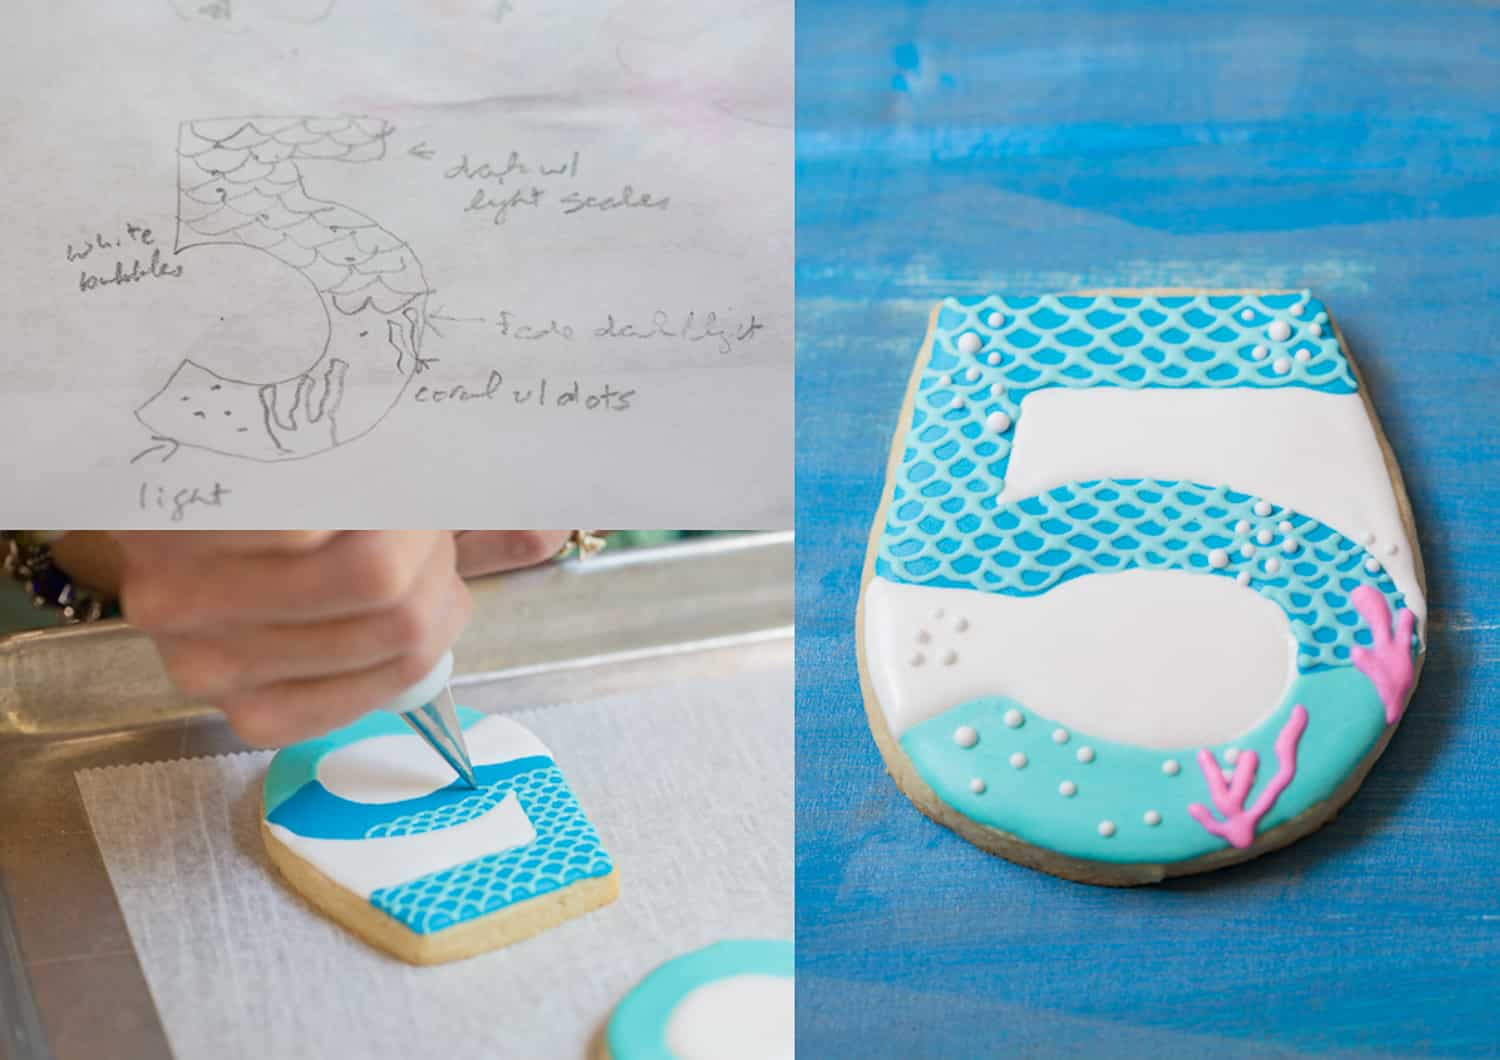 Susan Block hand decorating a sugar cookie based on a sketch.